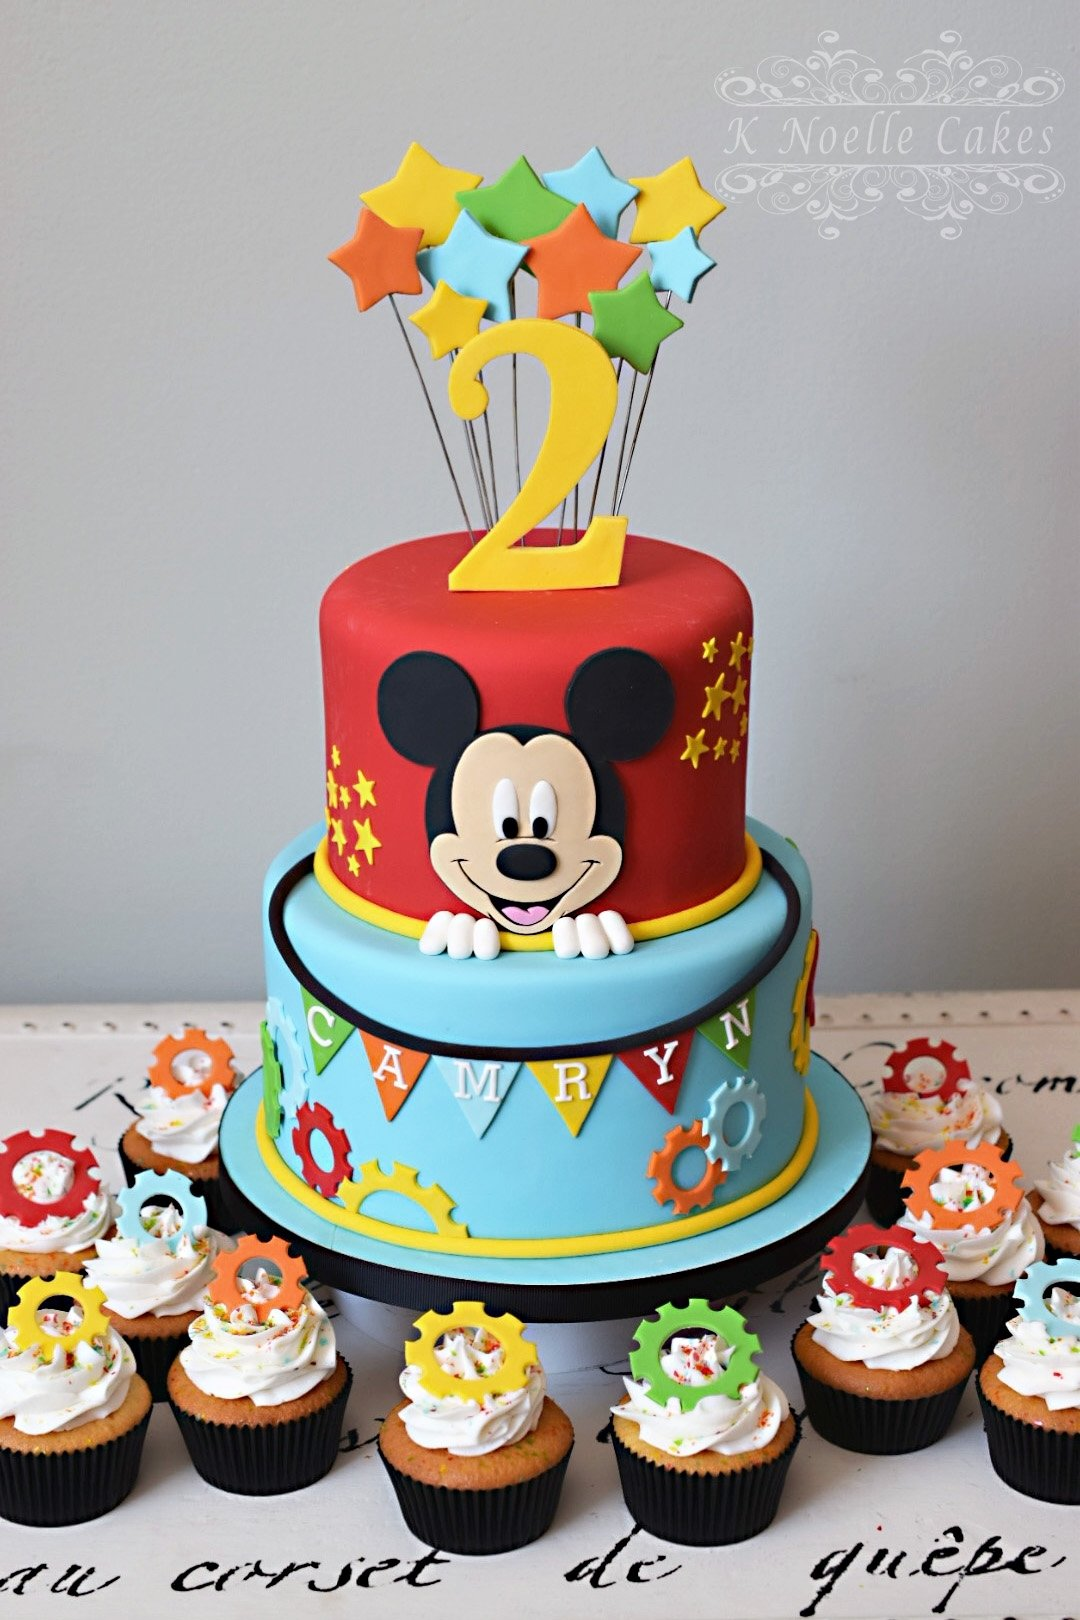 10 Beautiful Mickey Mouse Clubhouse Cake Ideas Theme Cakek Noelle Cakes By